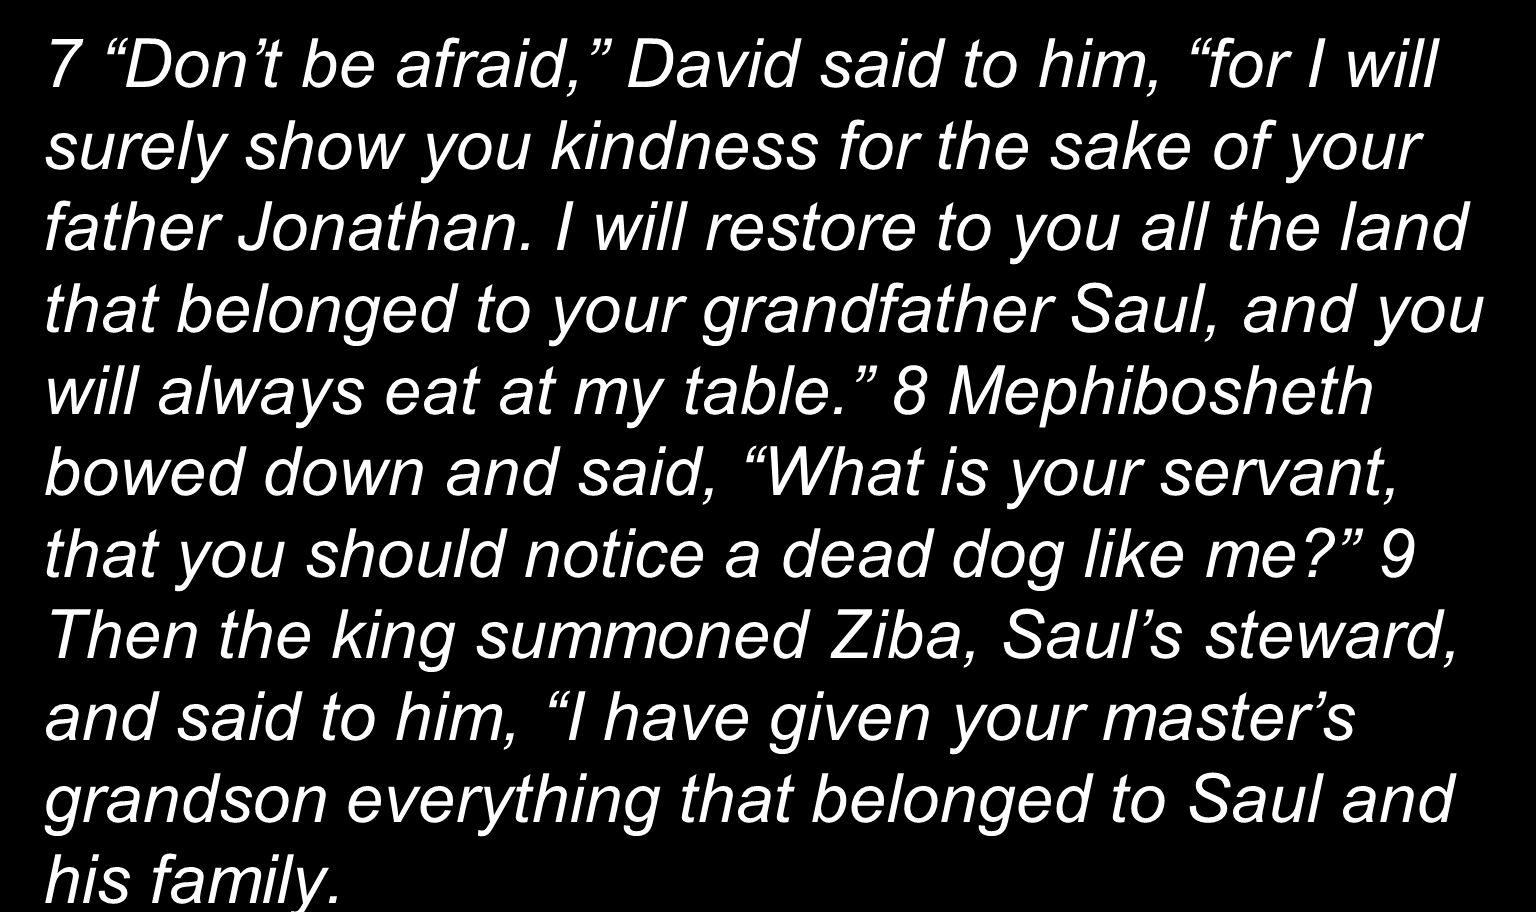 7 Dont be afraid, David said to him, for I will surely show you kindness for the sake of your father Jonathan. I will restore to you all the land that